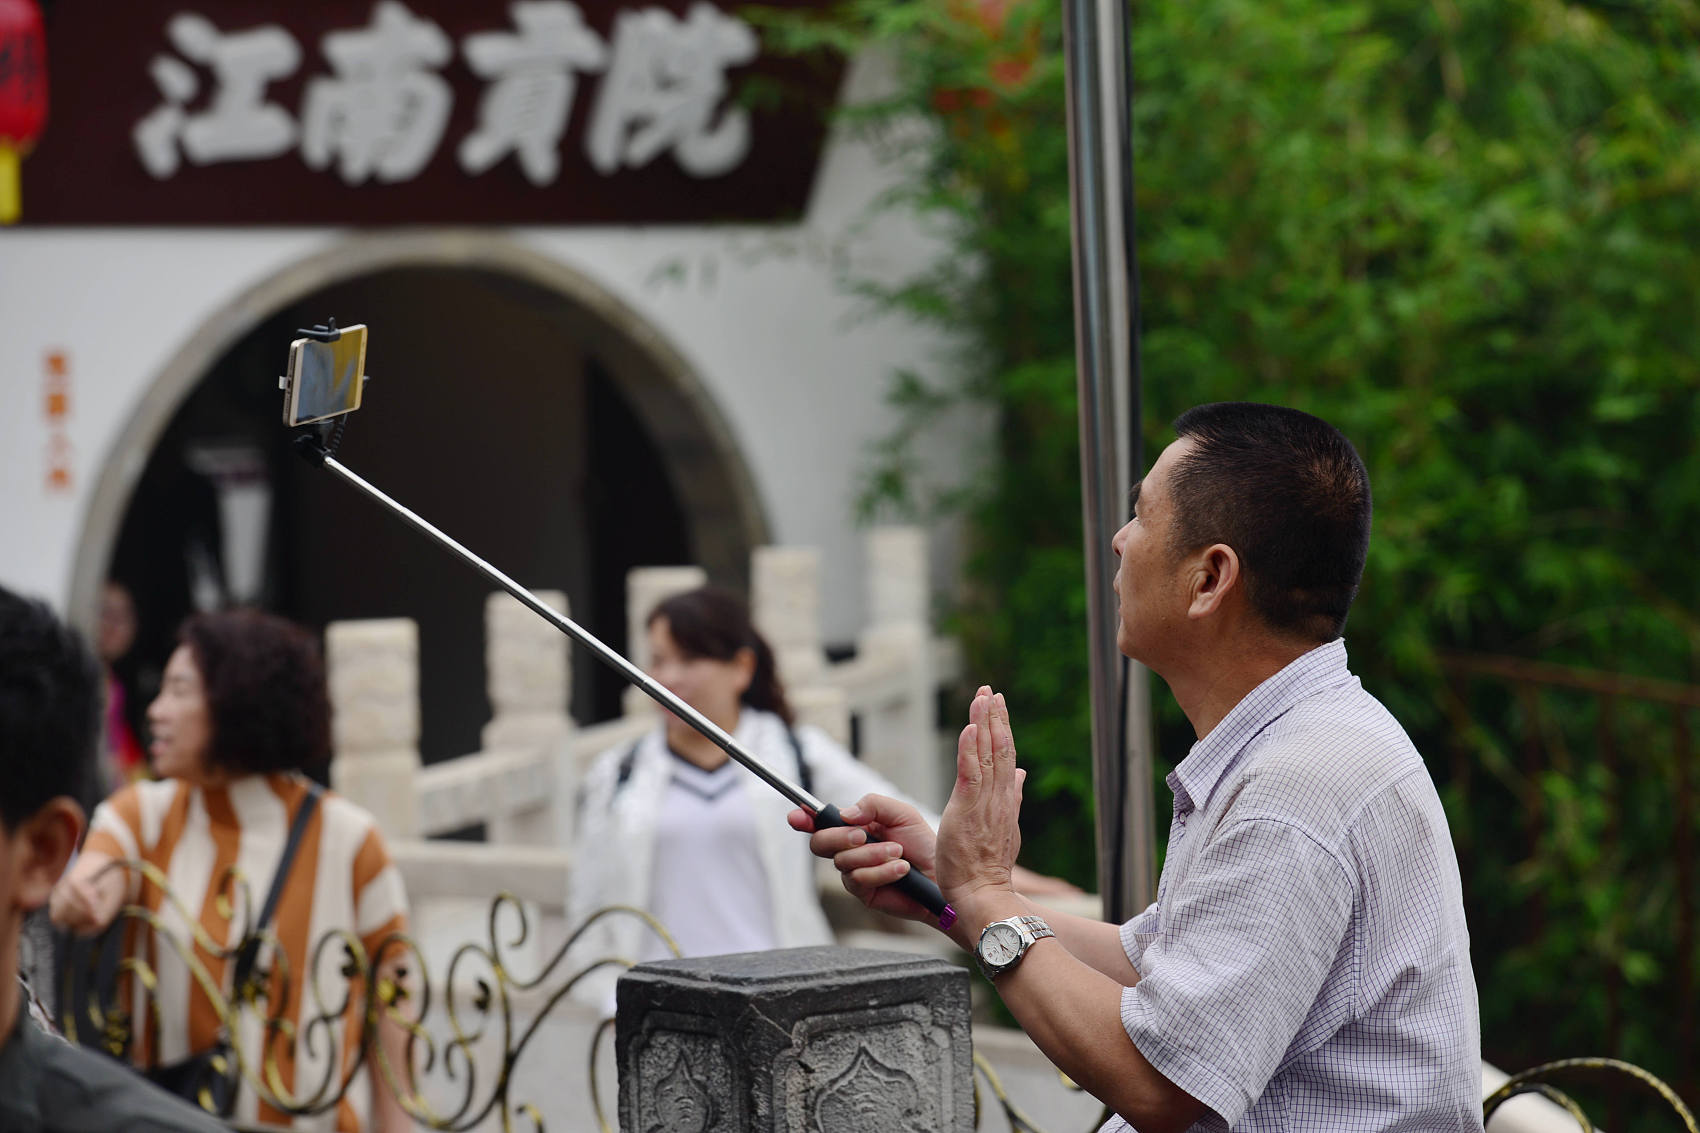 Short videos spur China's tourism industry, create new economic model